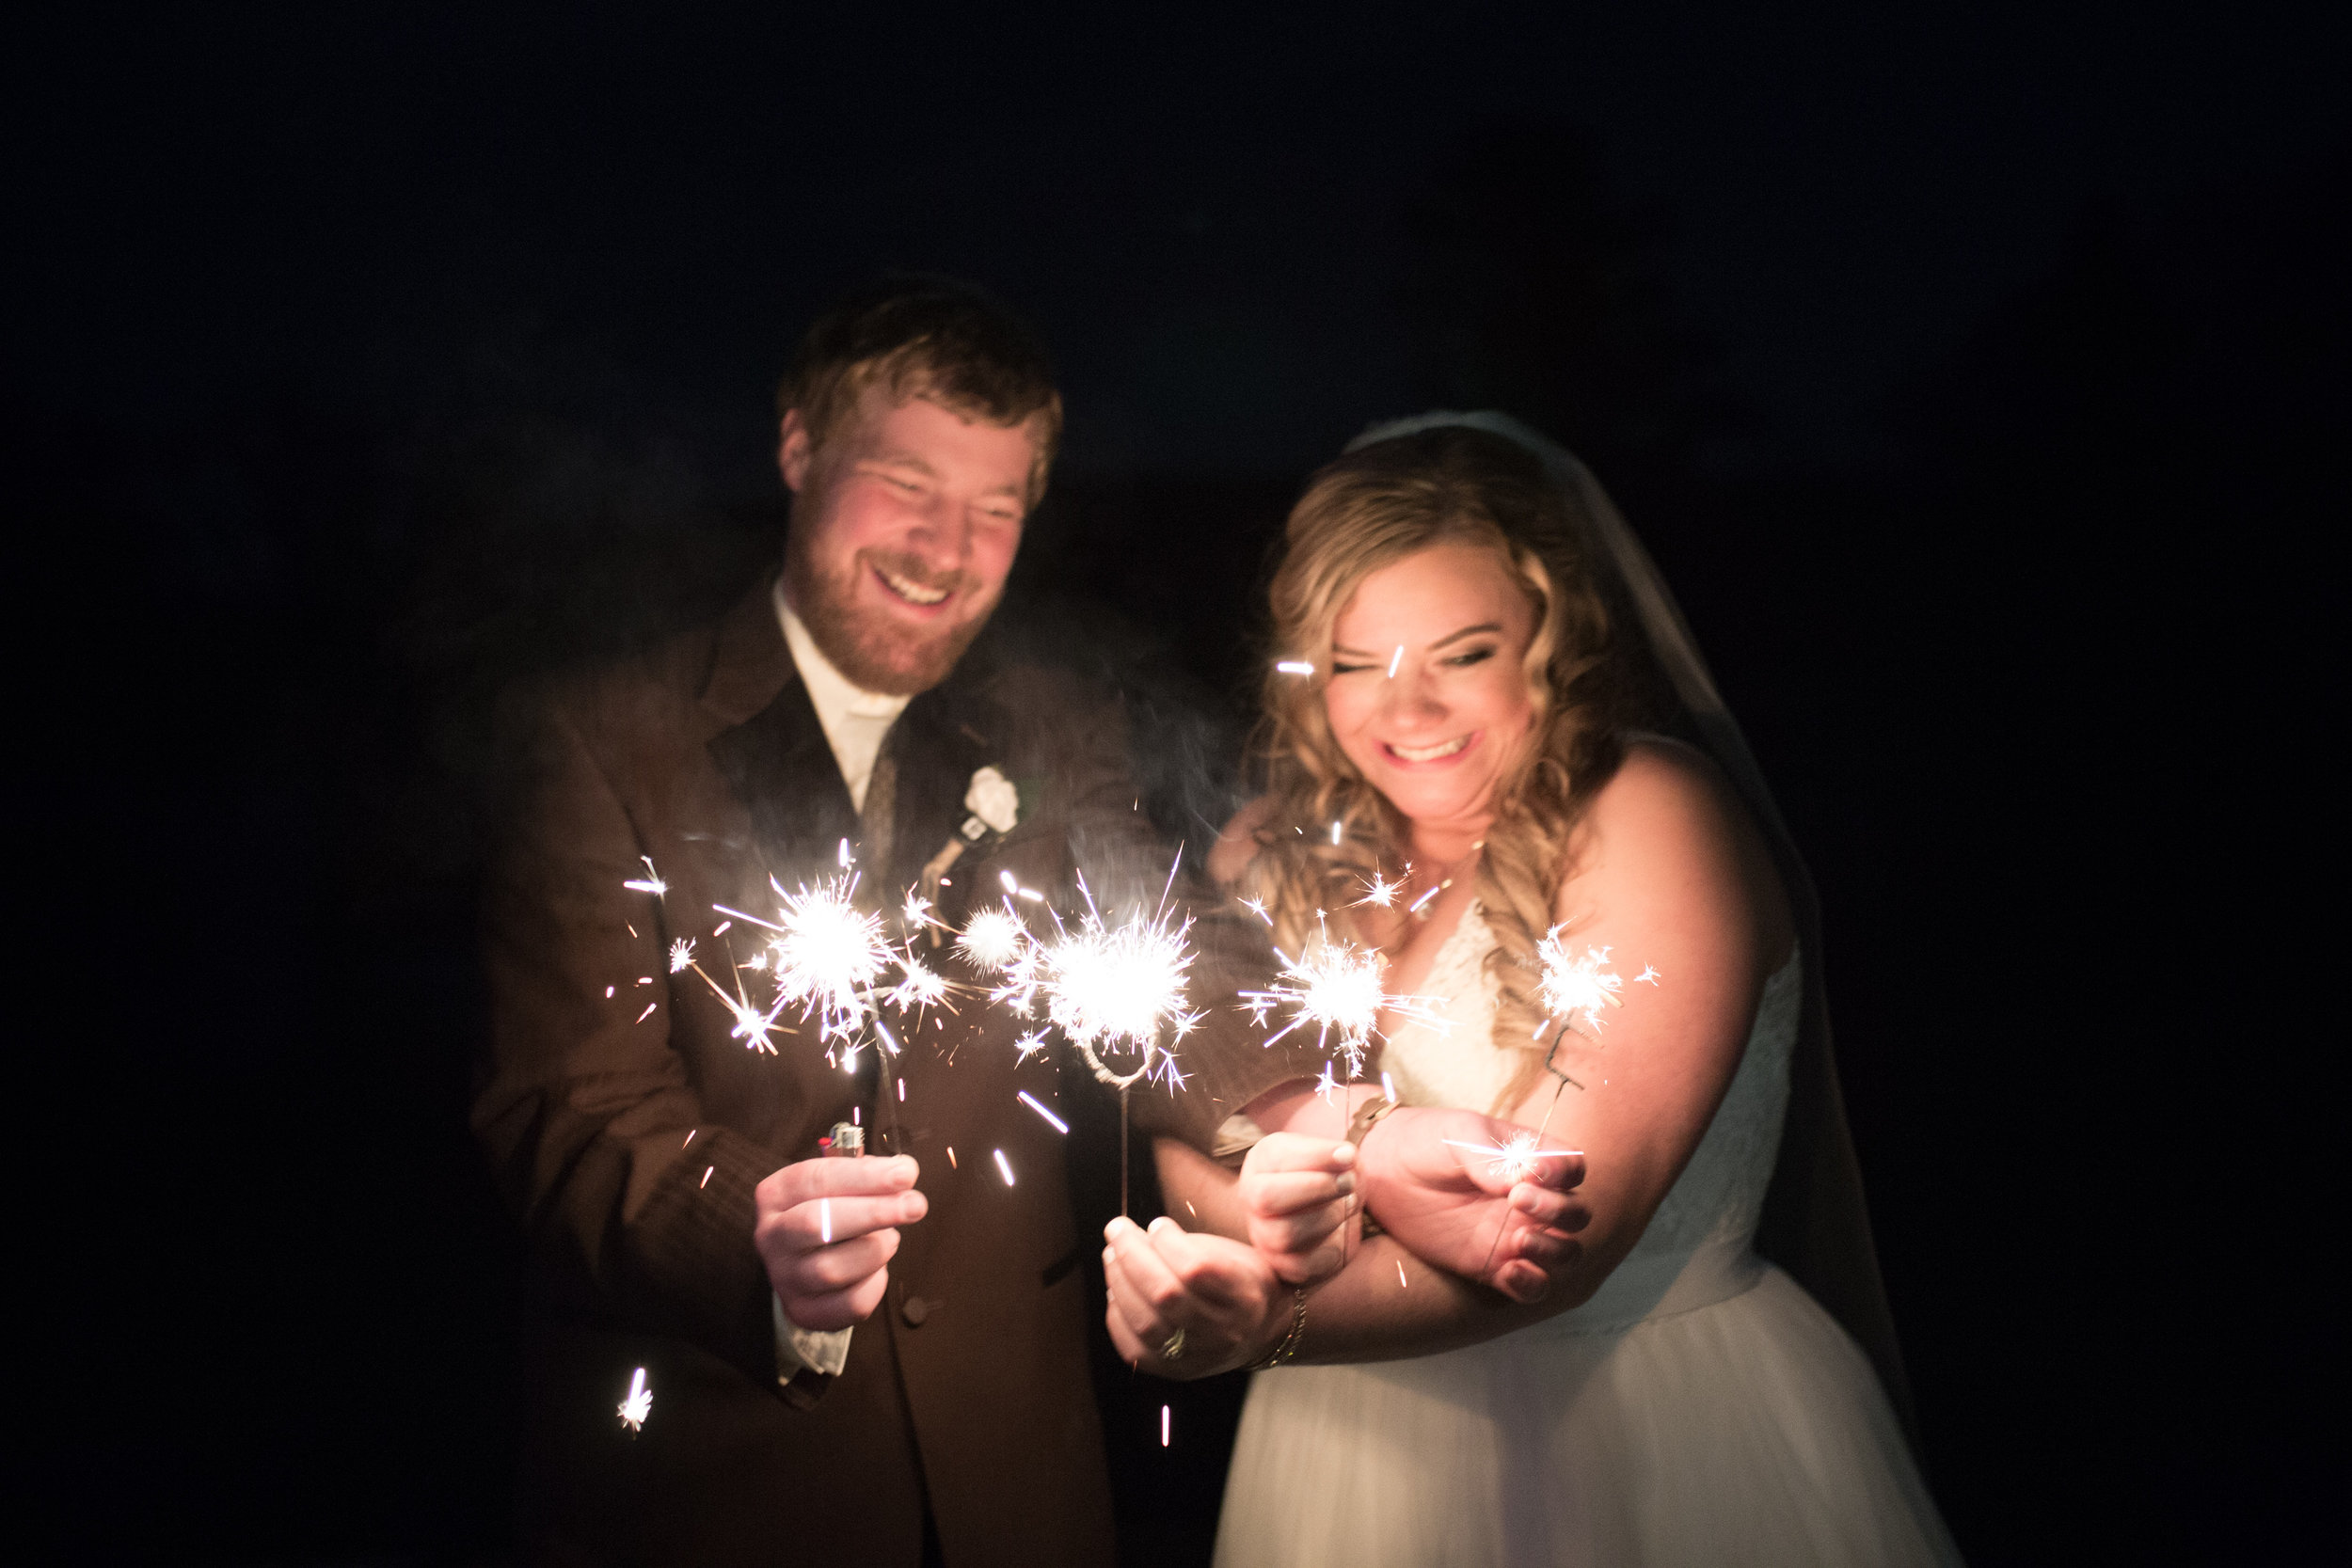 Bride and groom holding LOVE sparklers on their wedding day